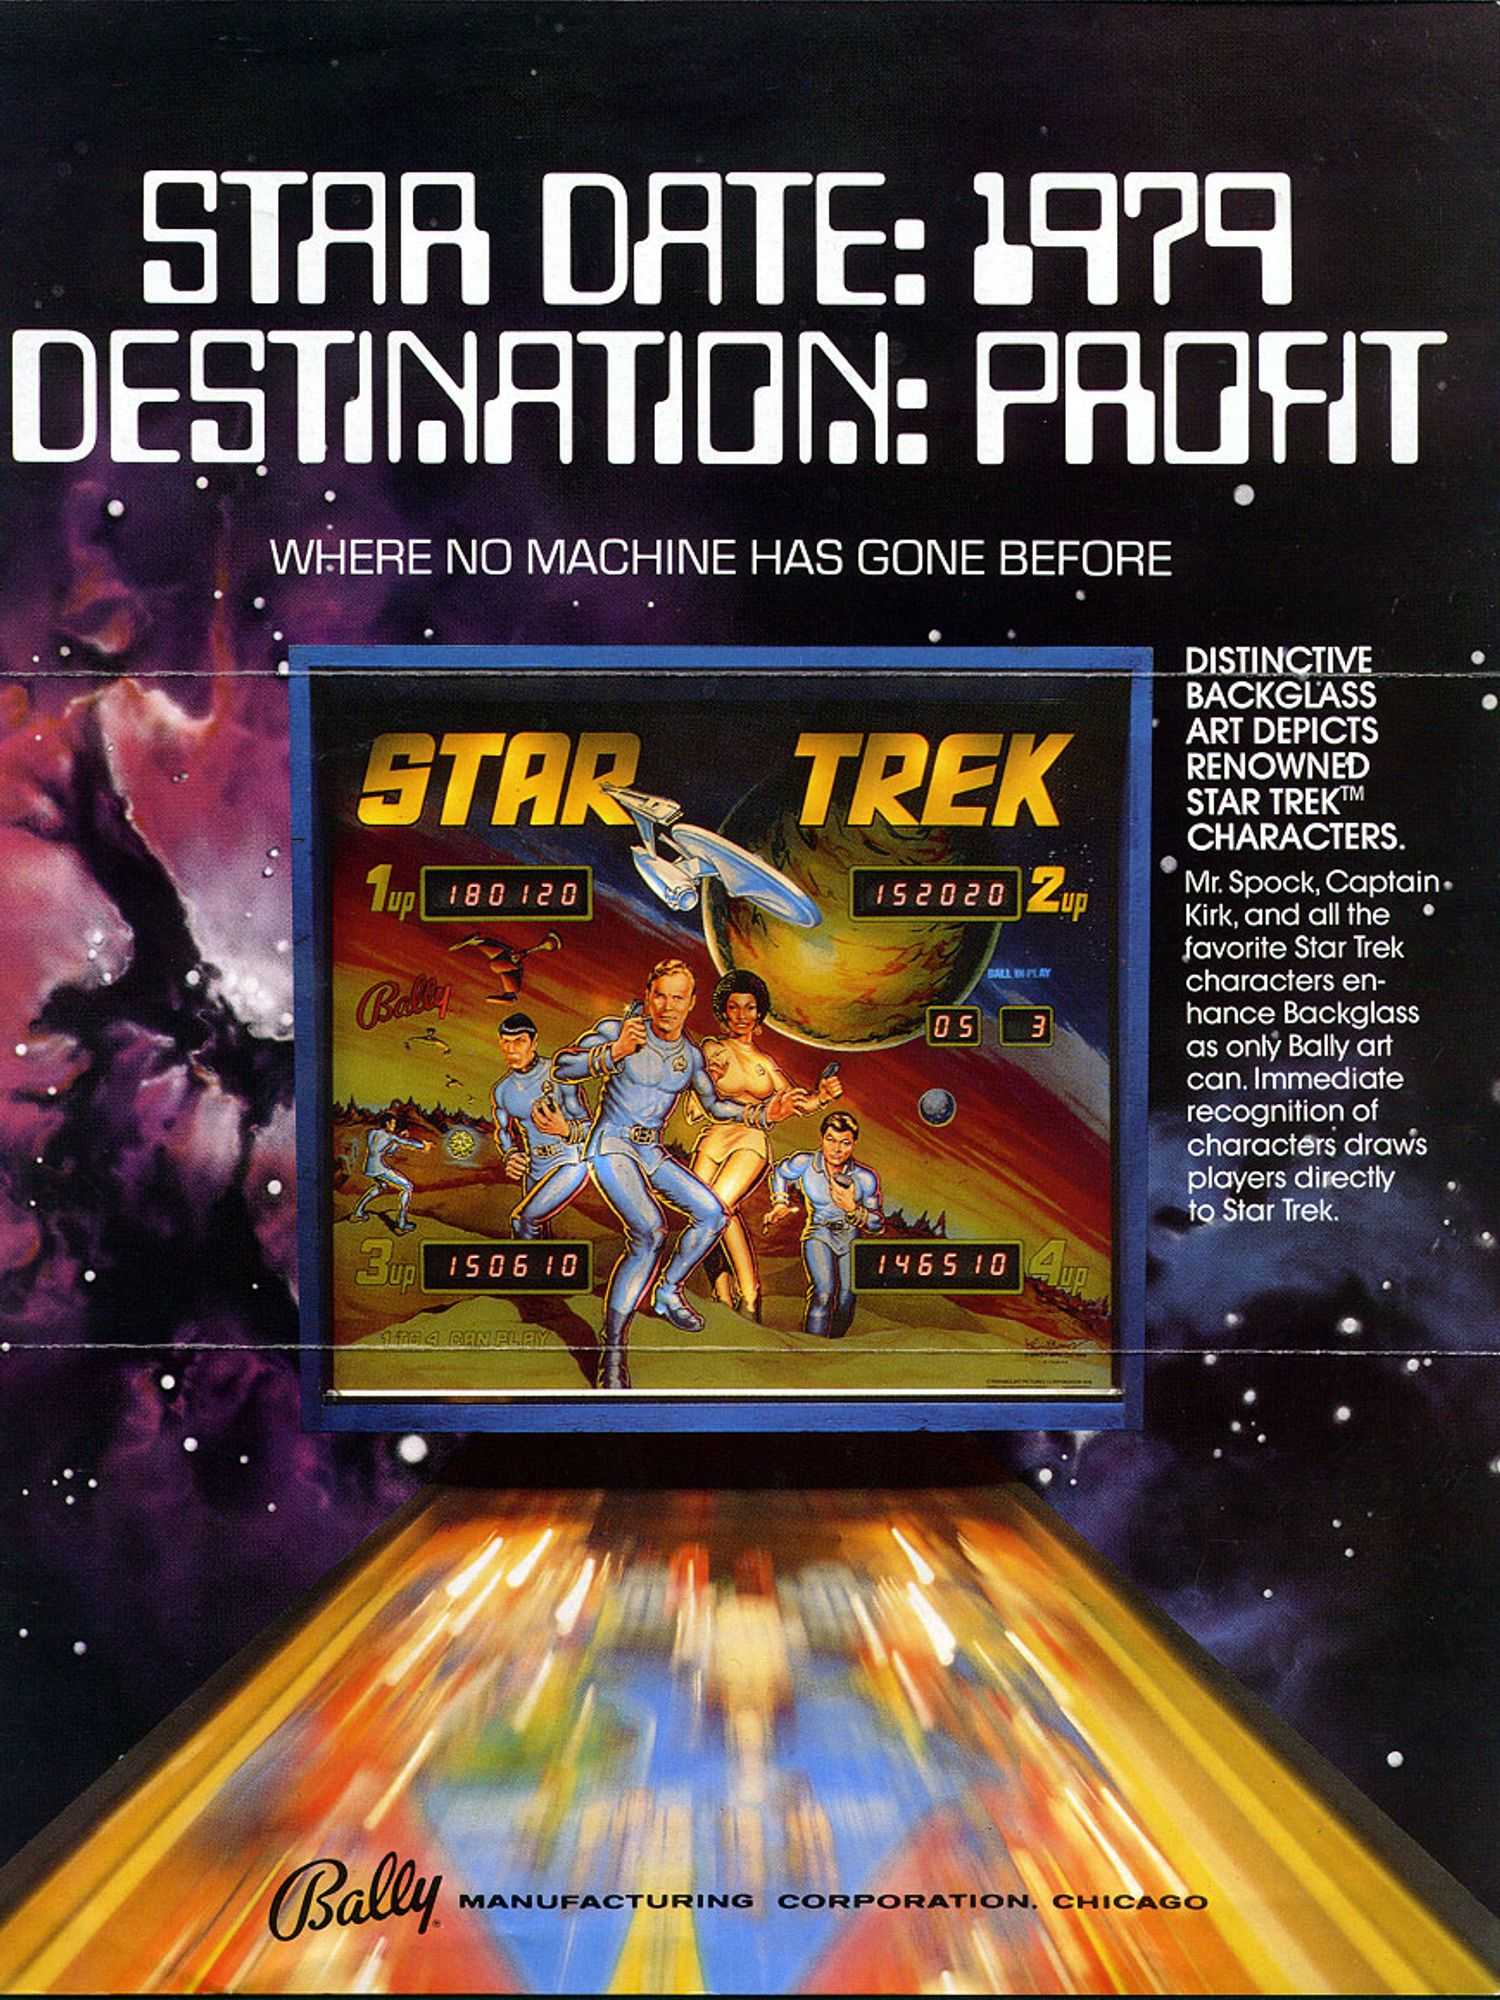 Star Trek Flyer front